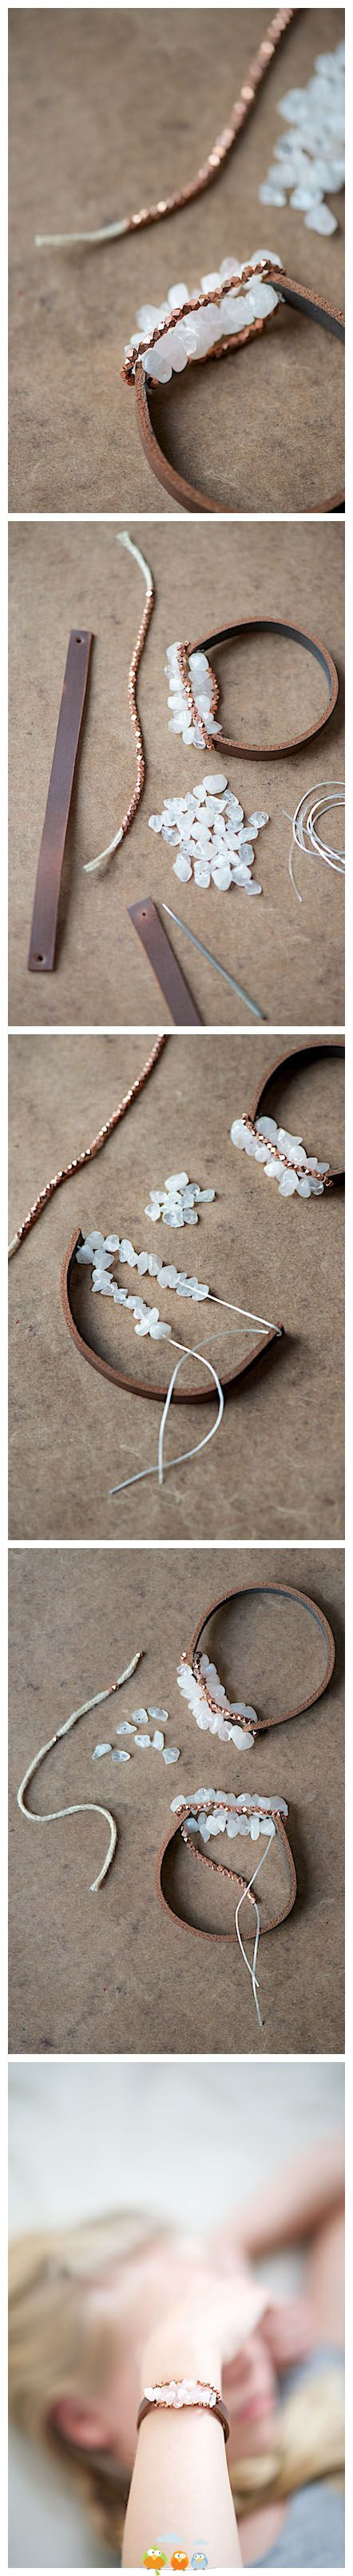 beaded jewelry I could actually make